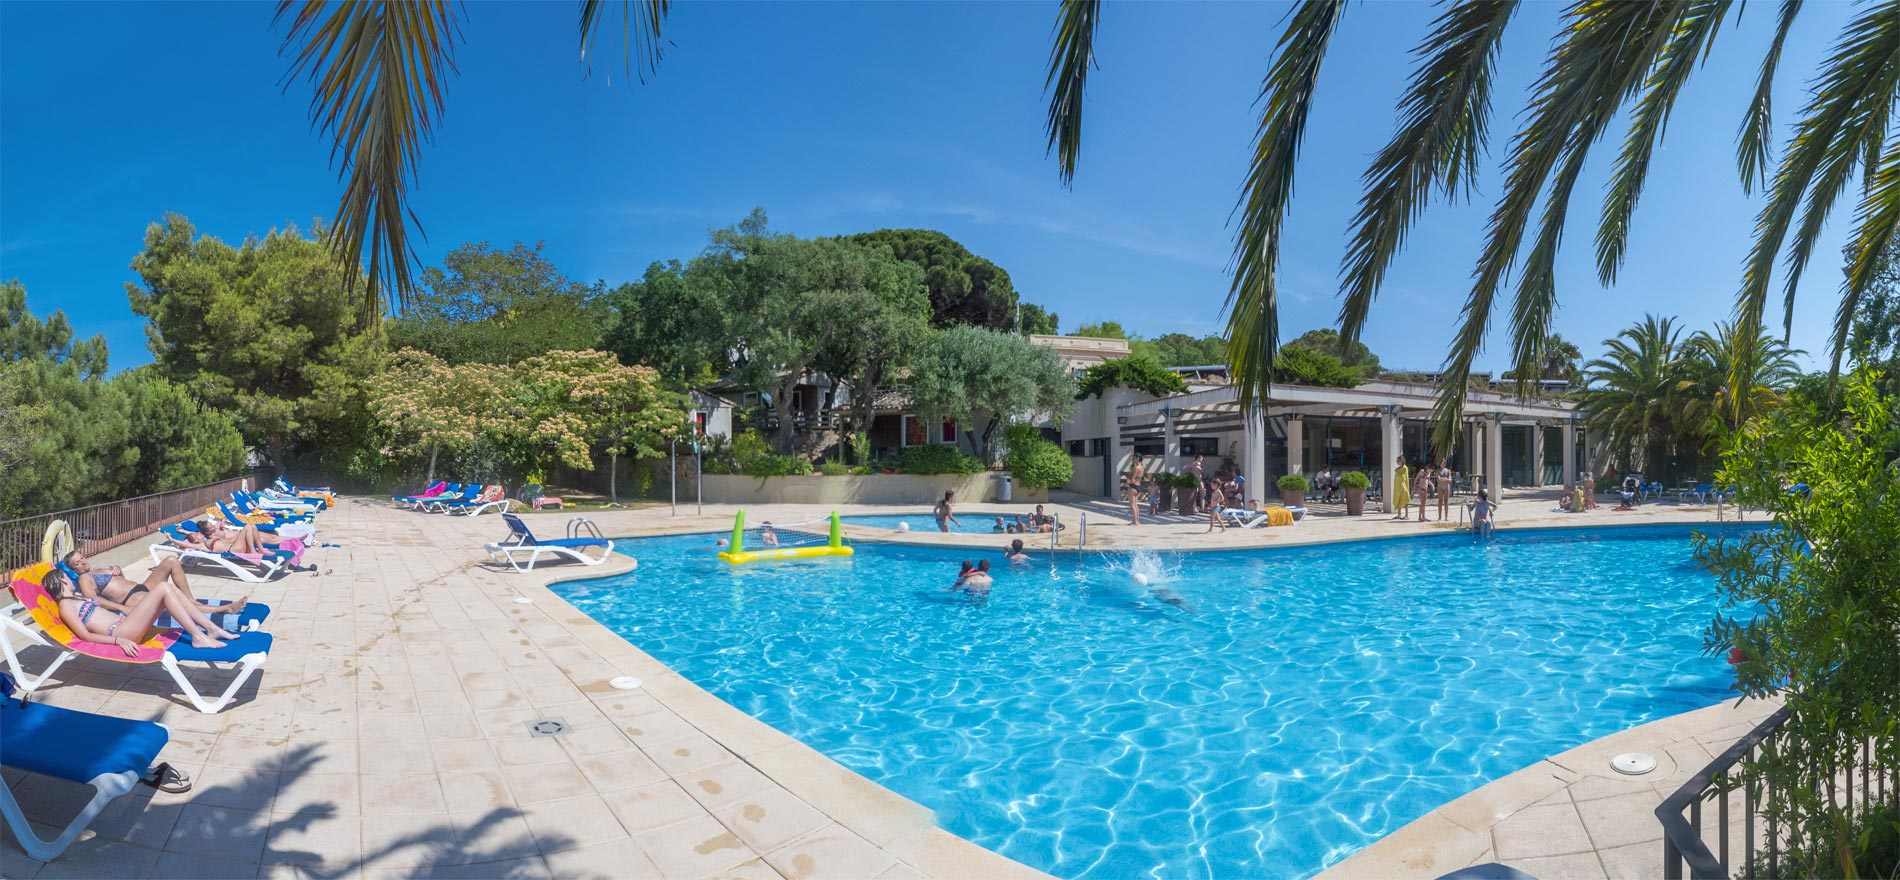 Swimming pool and mediterranean beach at the camping sant pol - Campgrounds in ohio with swimming pools ...